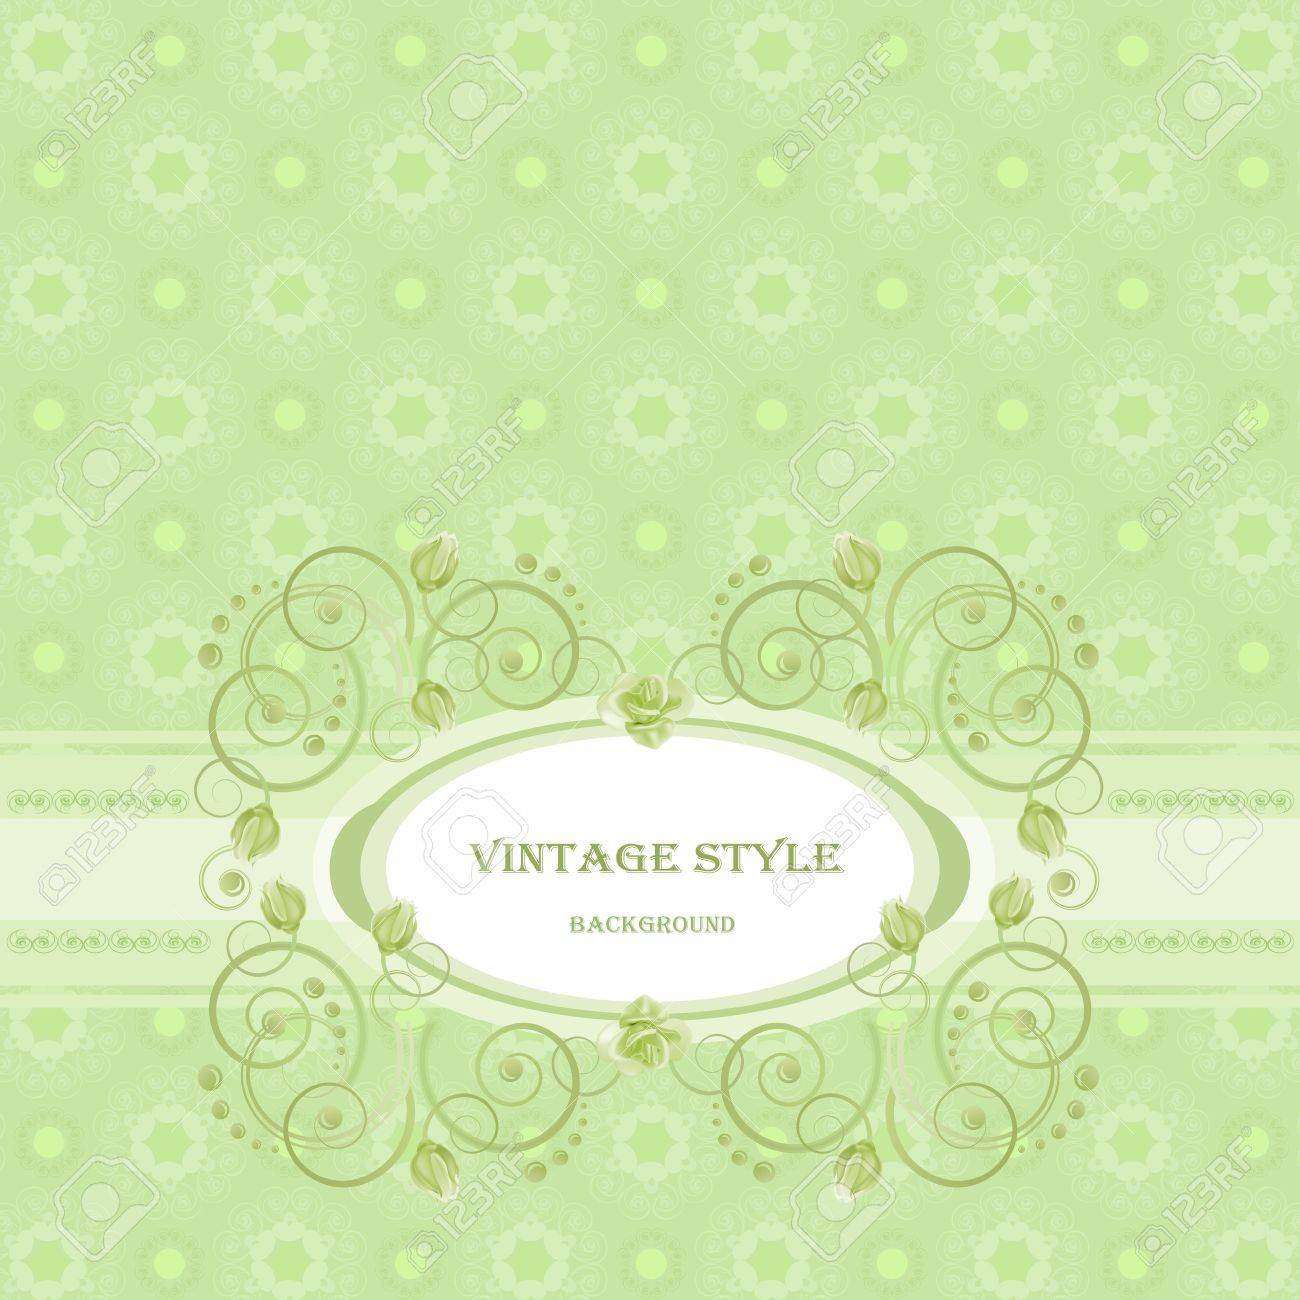 Vintage frame in green tones. Stock Vector - 12802772